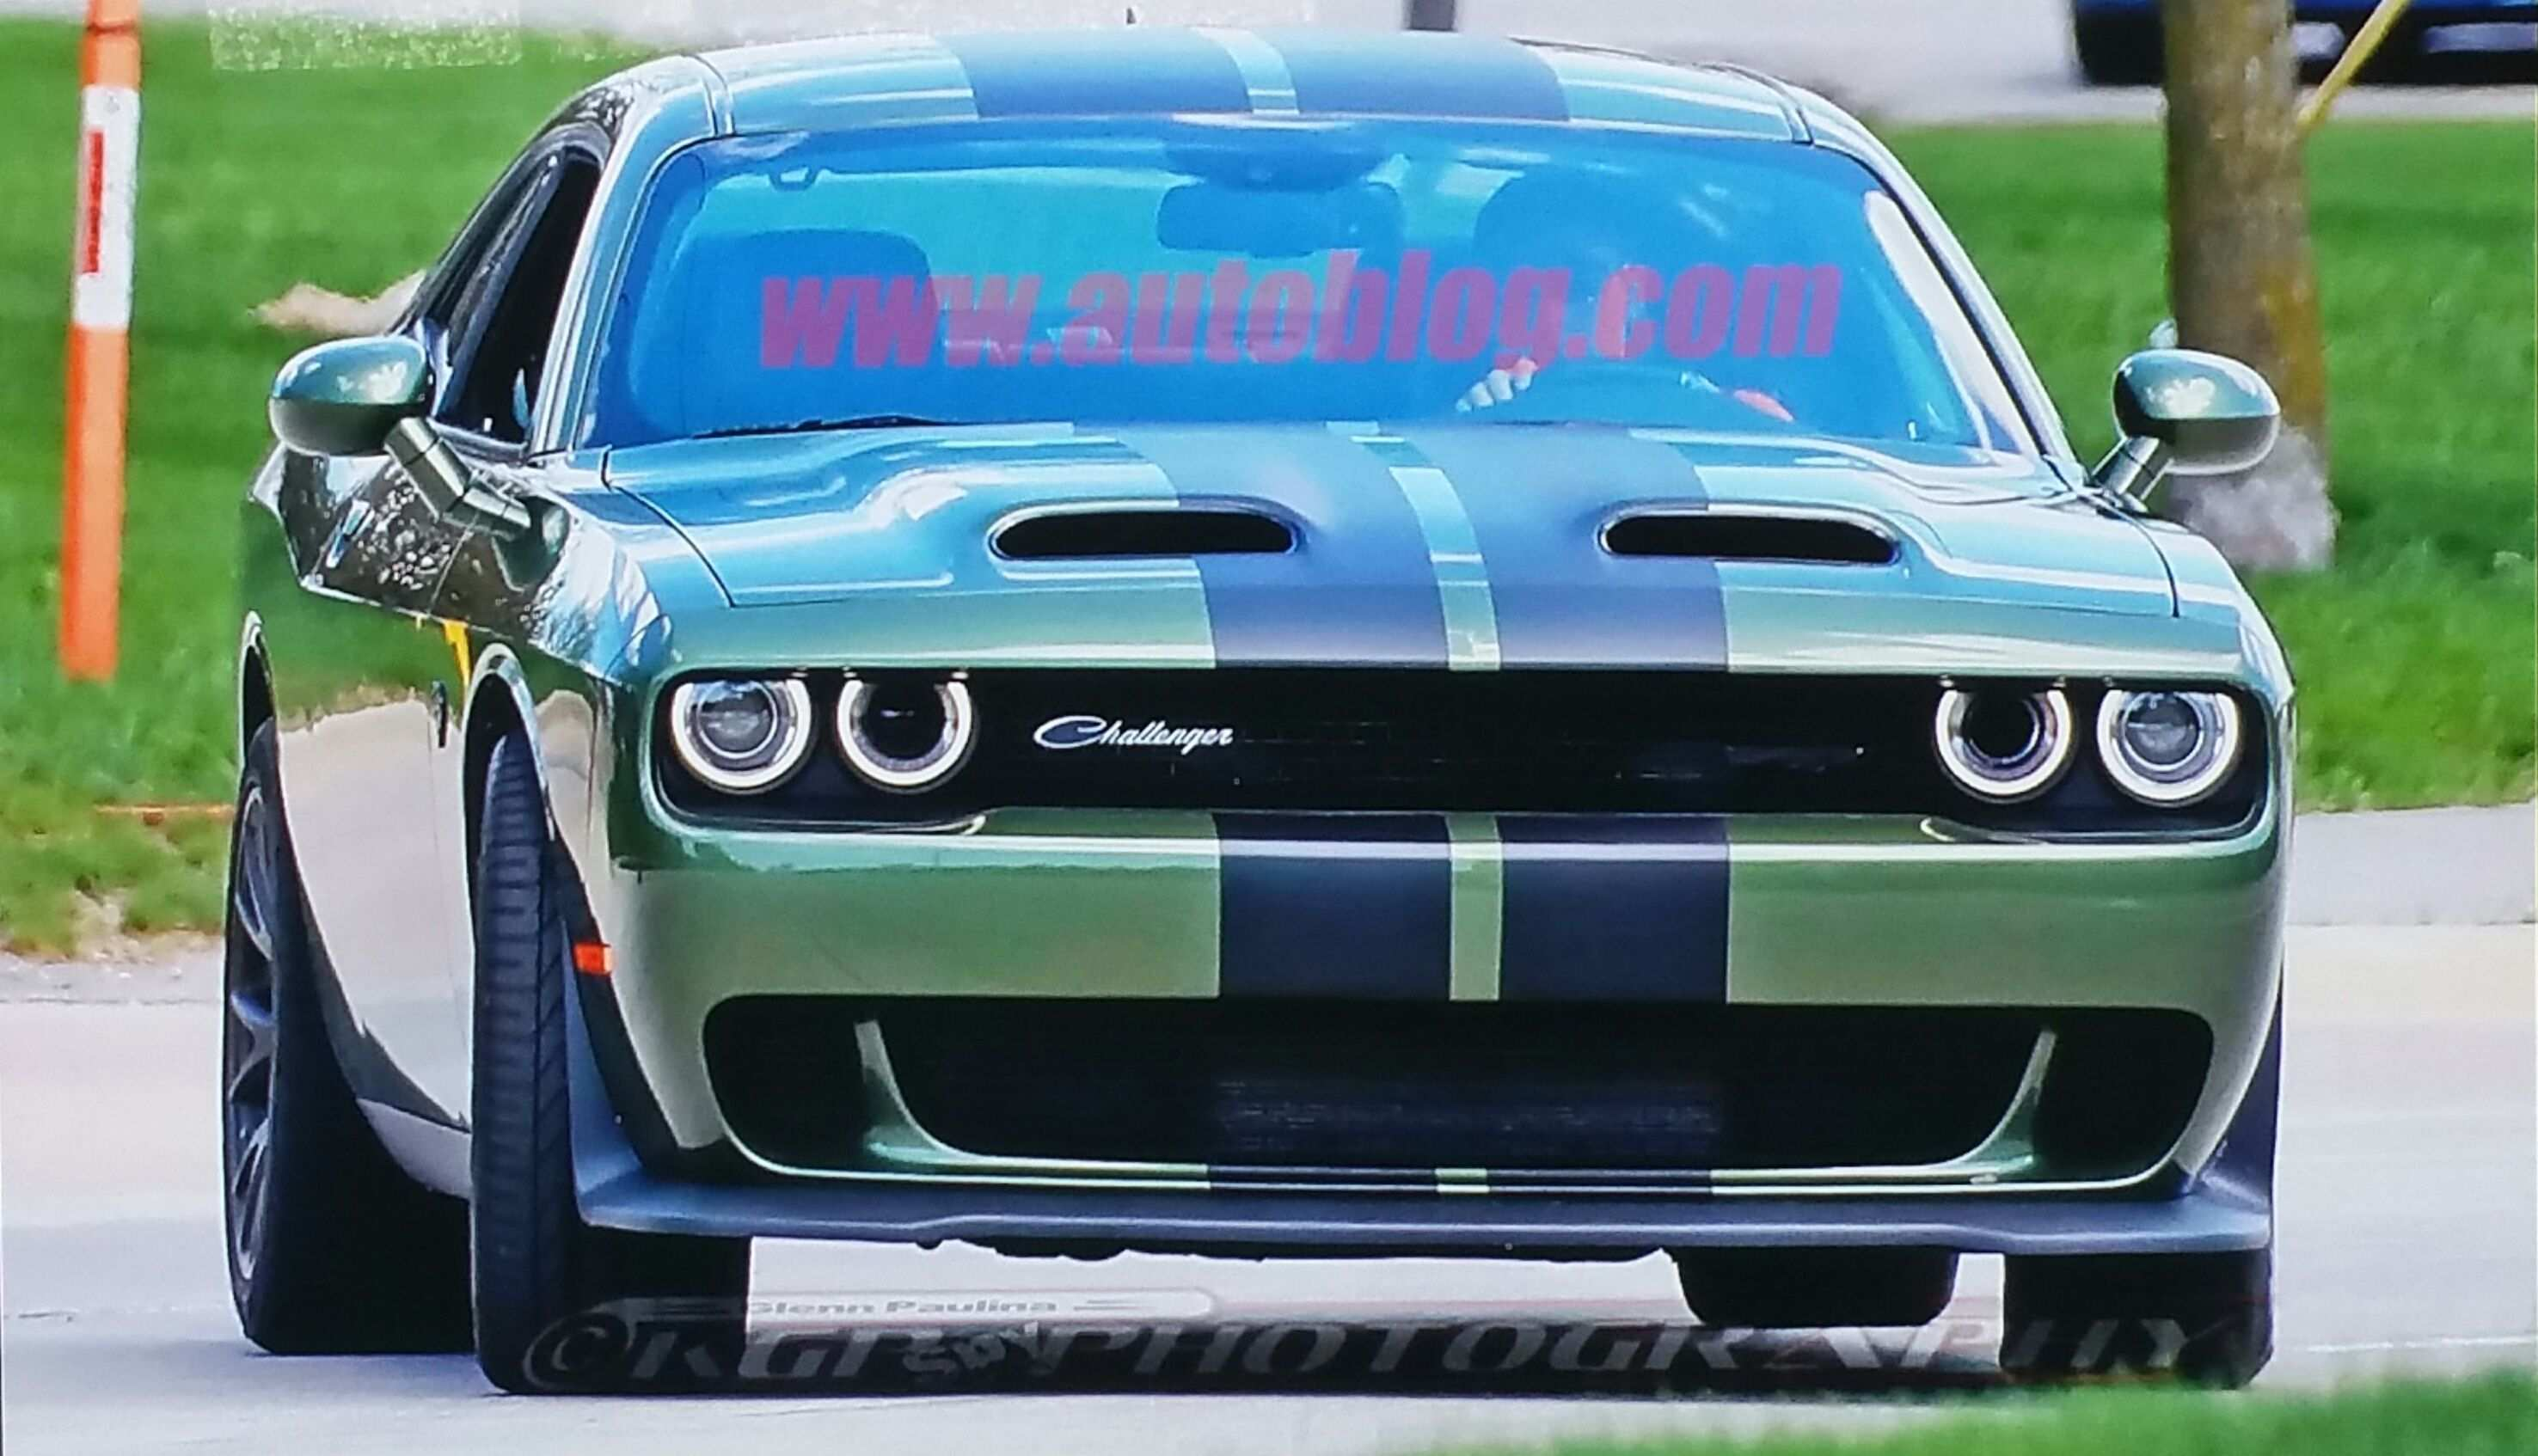 58 Concept of New Dodge 2019 Challenger Colors Spy Shoot Photos with New Dodge 2019 Challenger Colors Spy Shoot